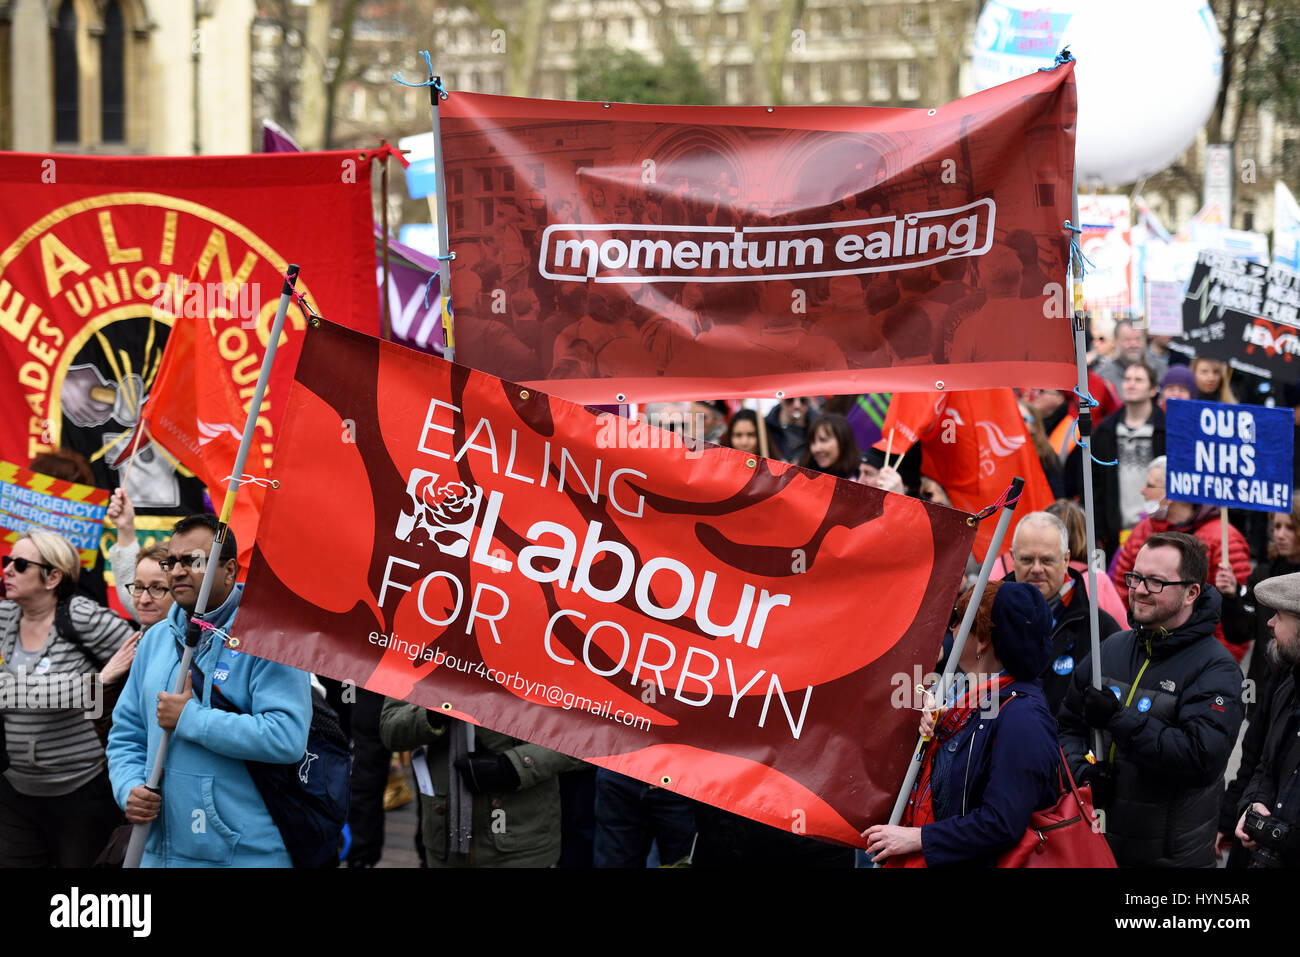 Ealing Labour party banner and Momentum Ealing banner during the 'Our NHS' support for the National Health - Stock Image